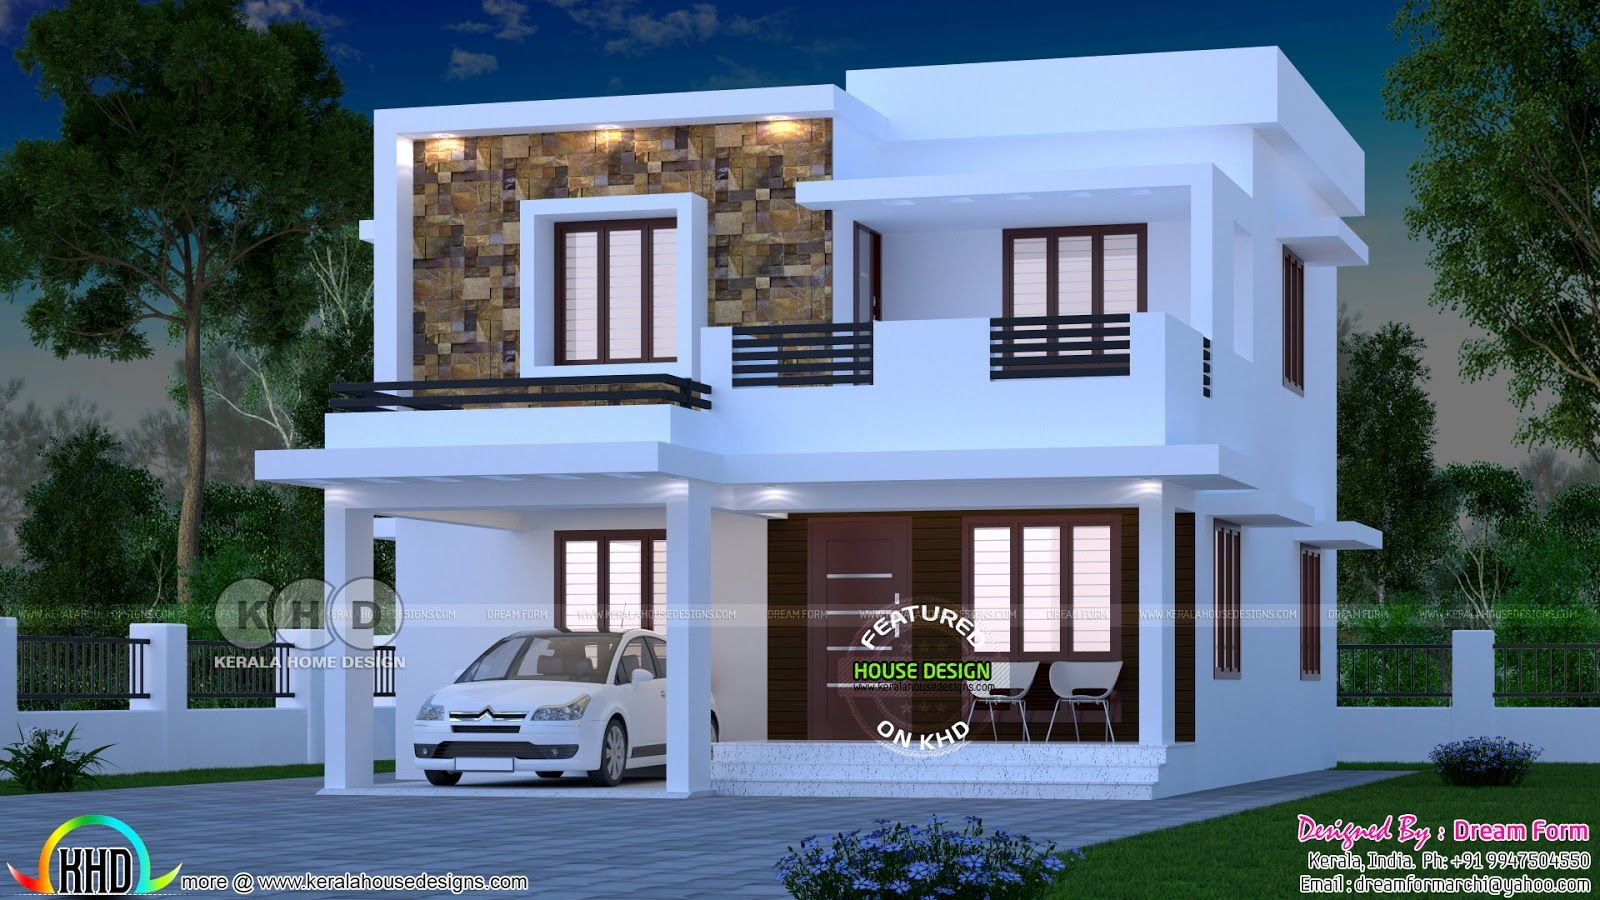 Modern house plans design dream houses also my blog in colors rh pinterest